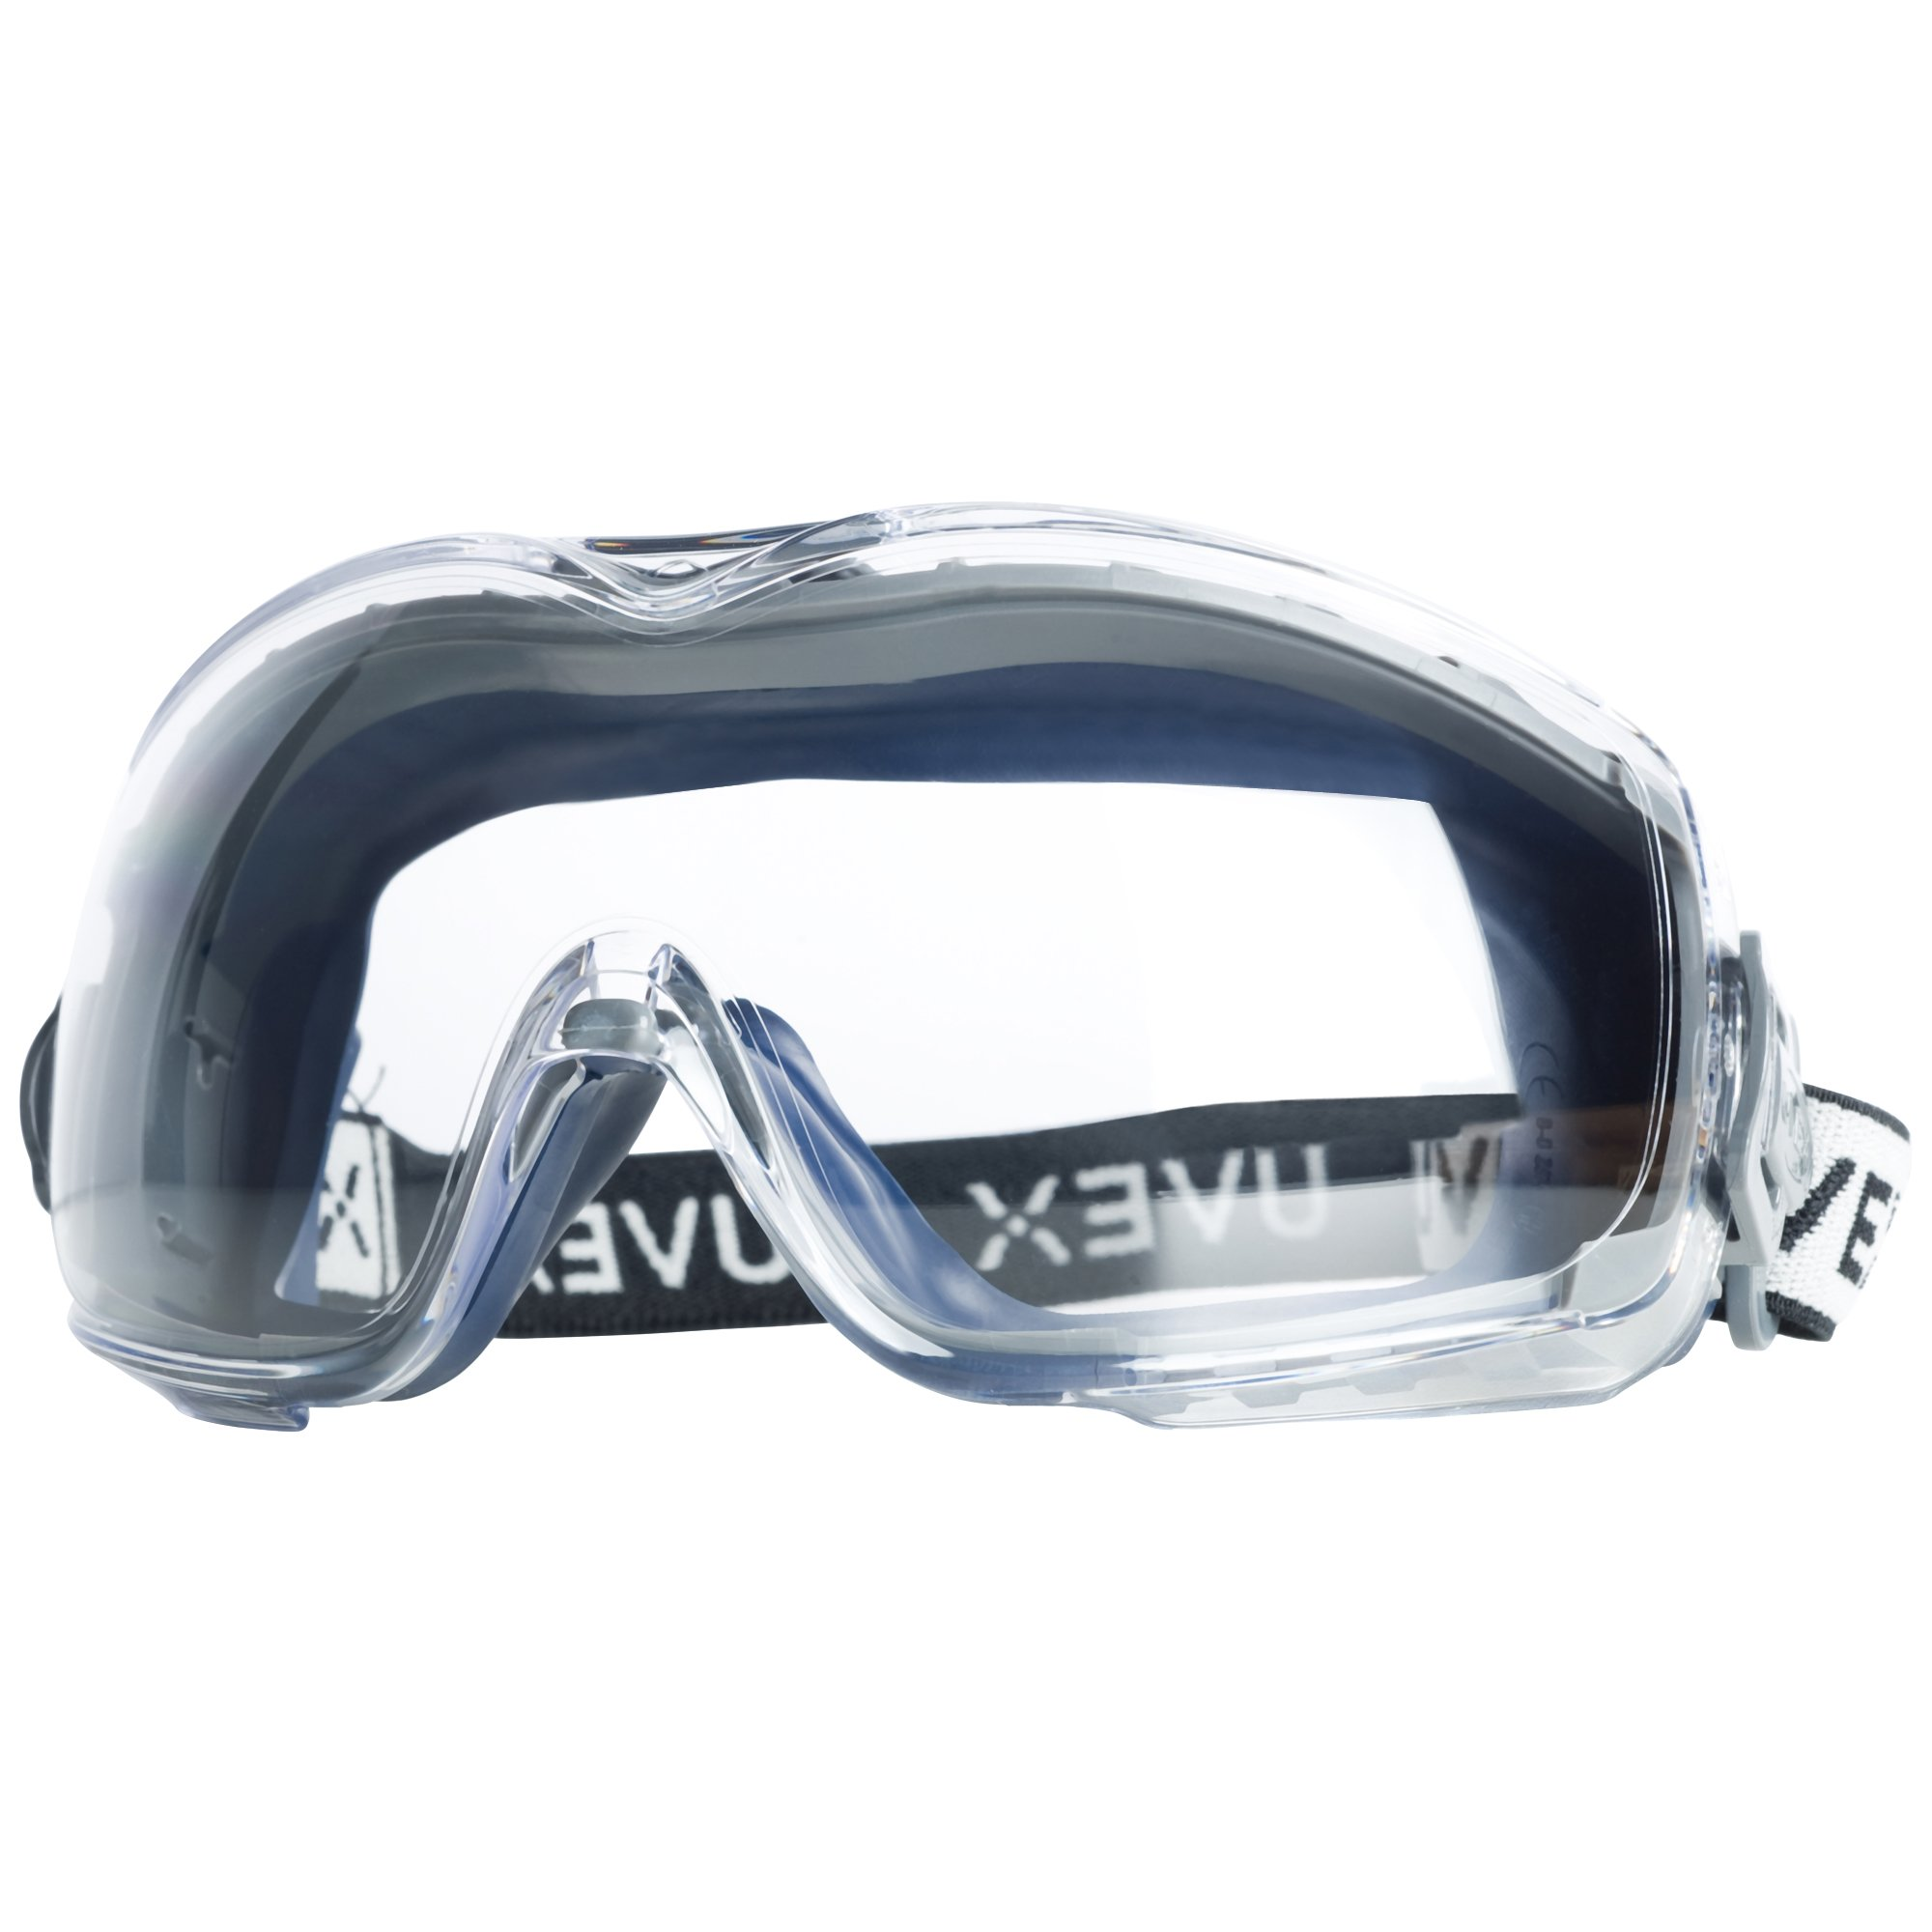 Uvex Stealth OTG Safety Goggles with Anti-Fog/Anti-Scratch Coating (S3970DF ) - 19369, Navy Body, Clear Lens by Uvex by Sperian